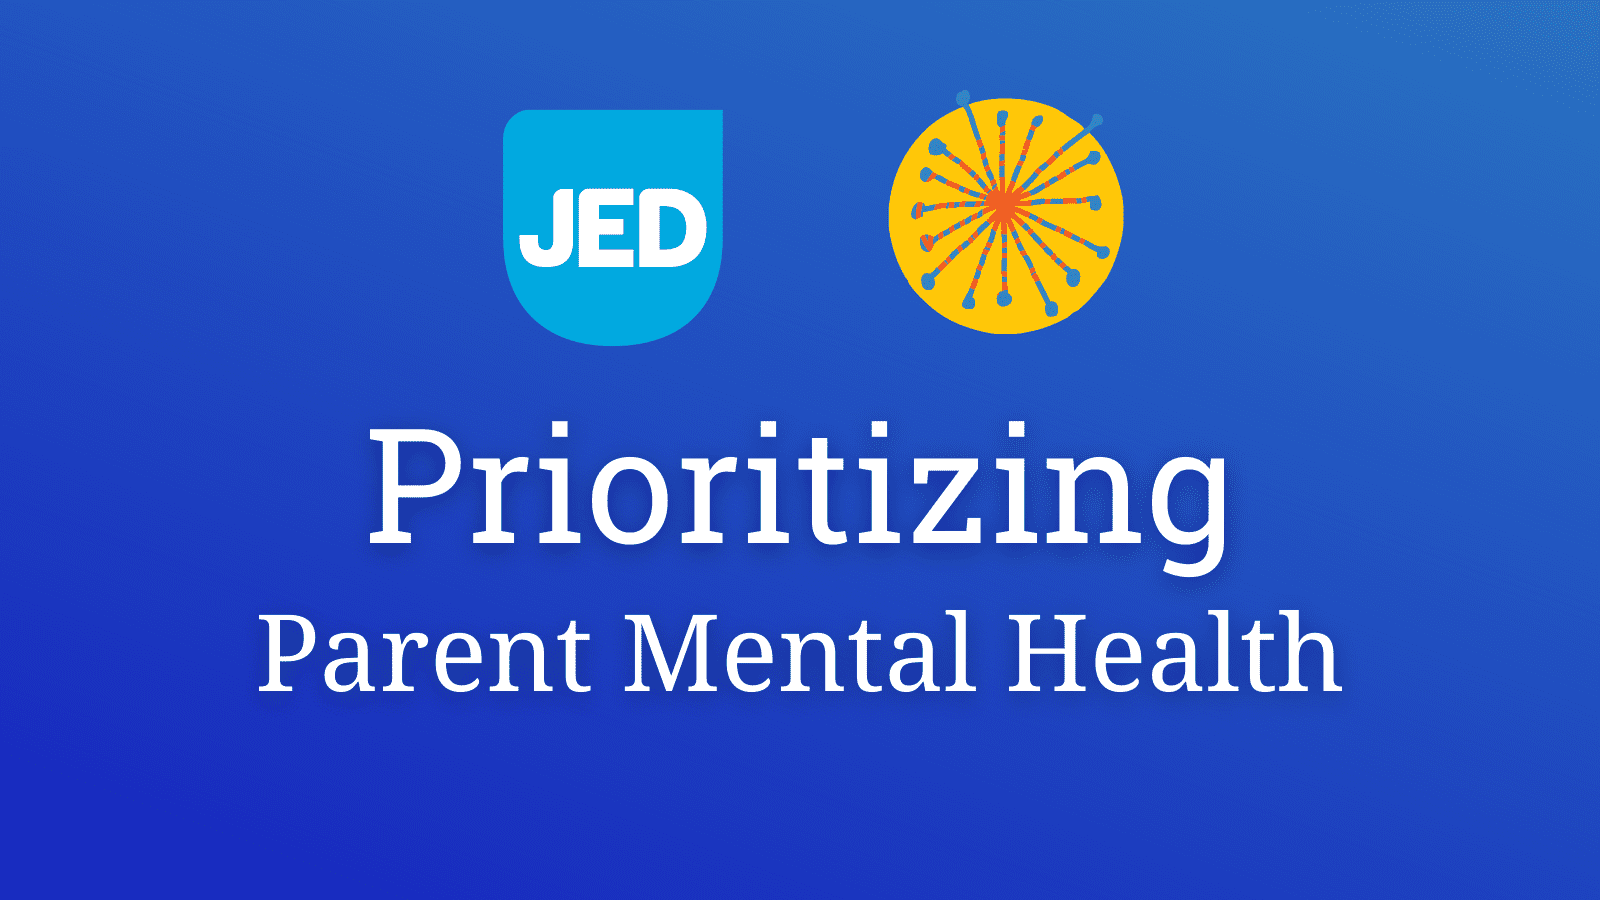 Prioritizing Parent Mental Health - JED Clay Center